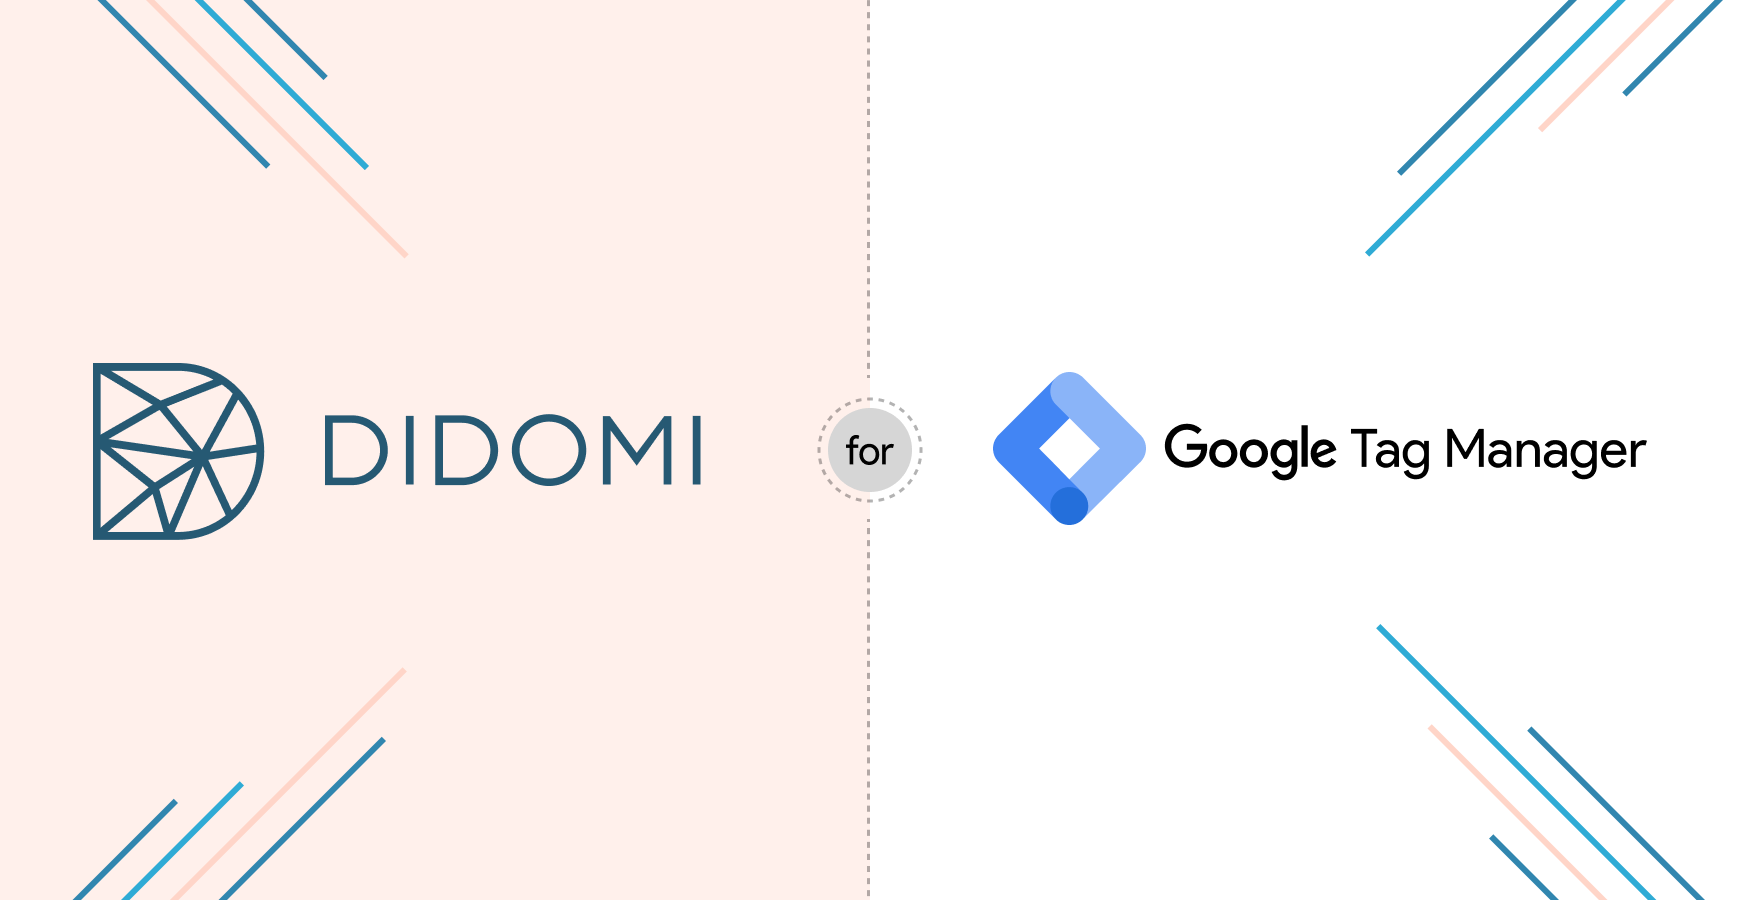 Didomi for Google Tag Manager